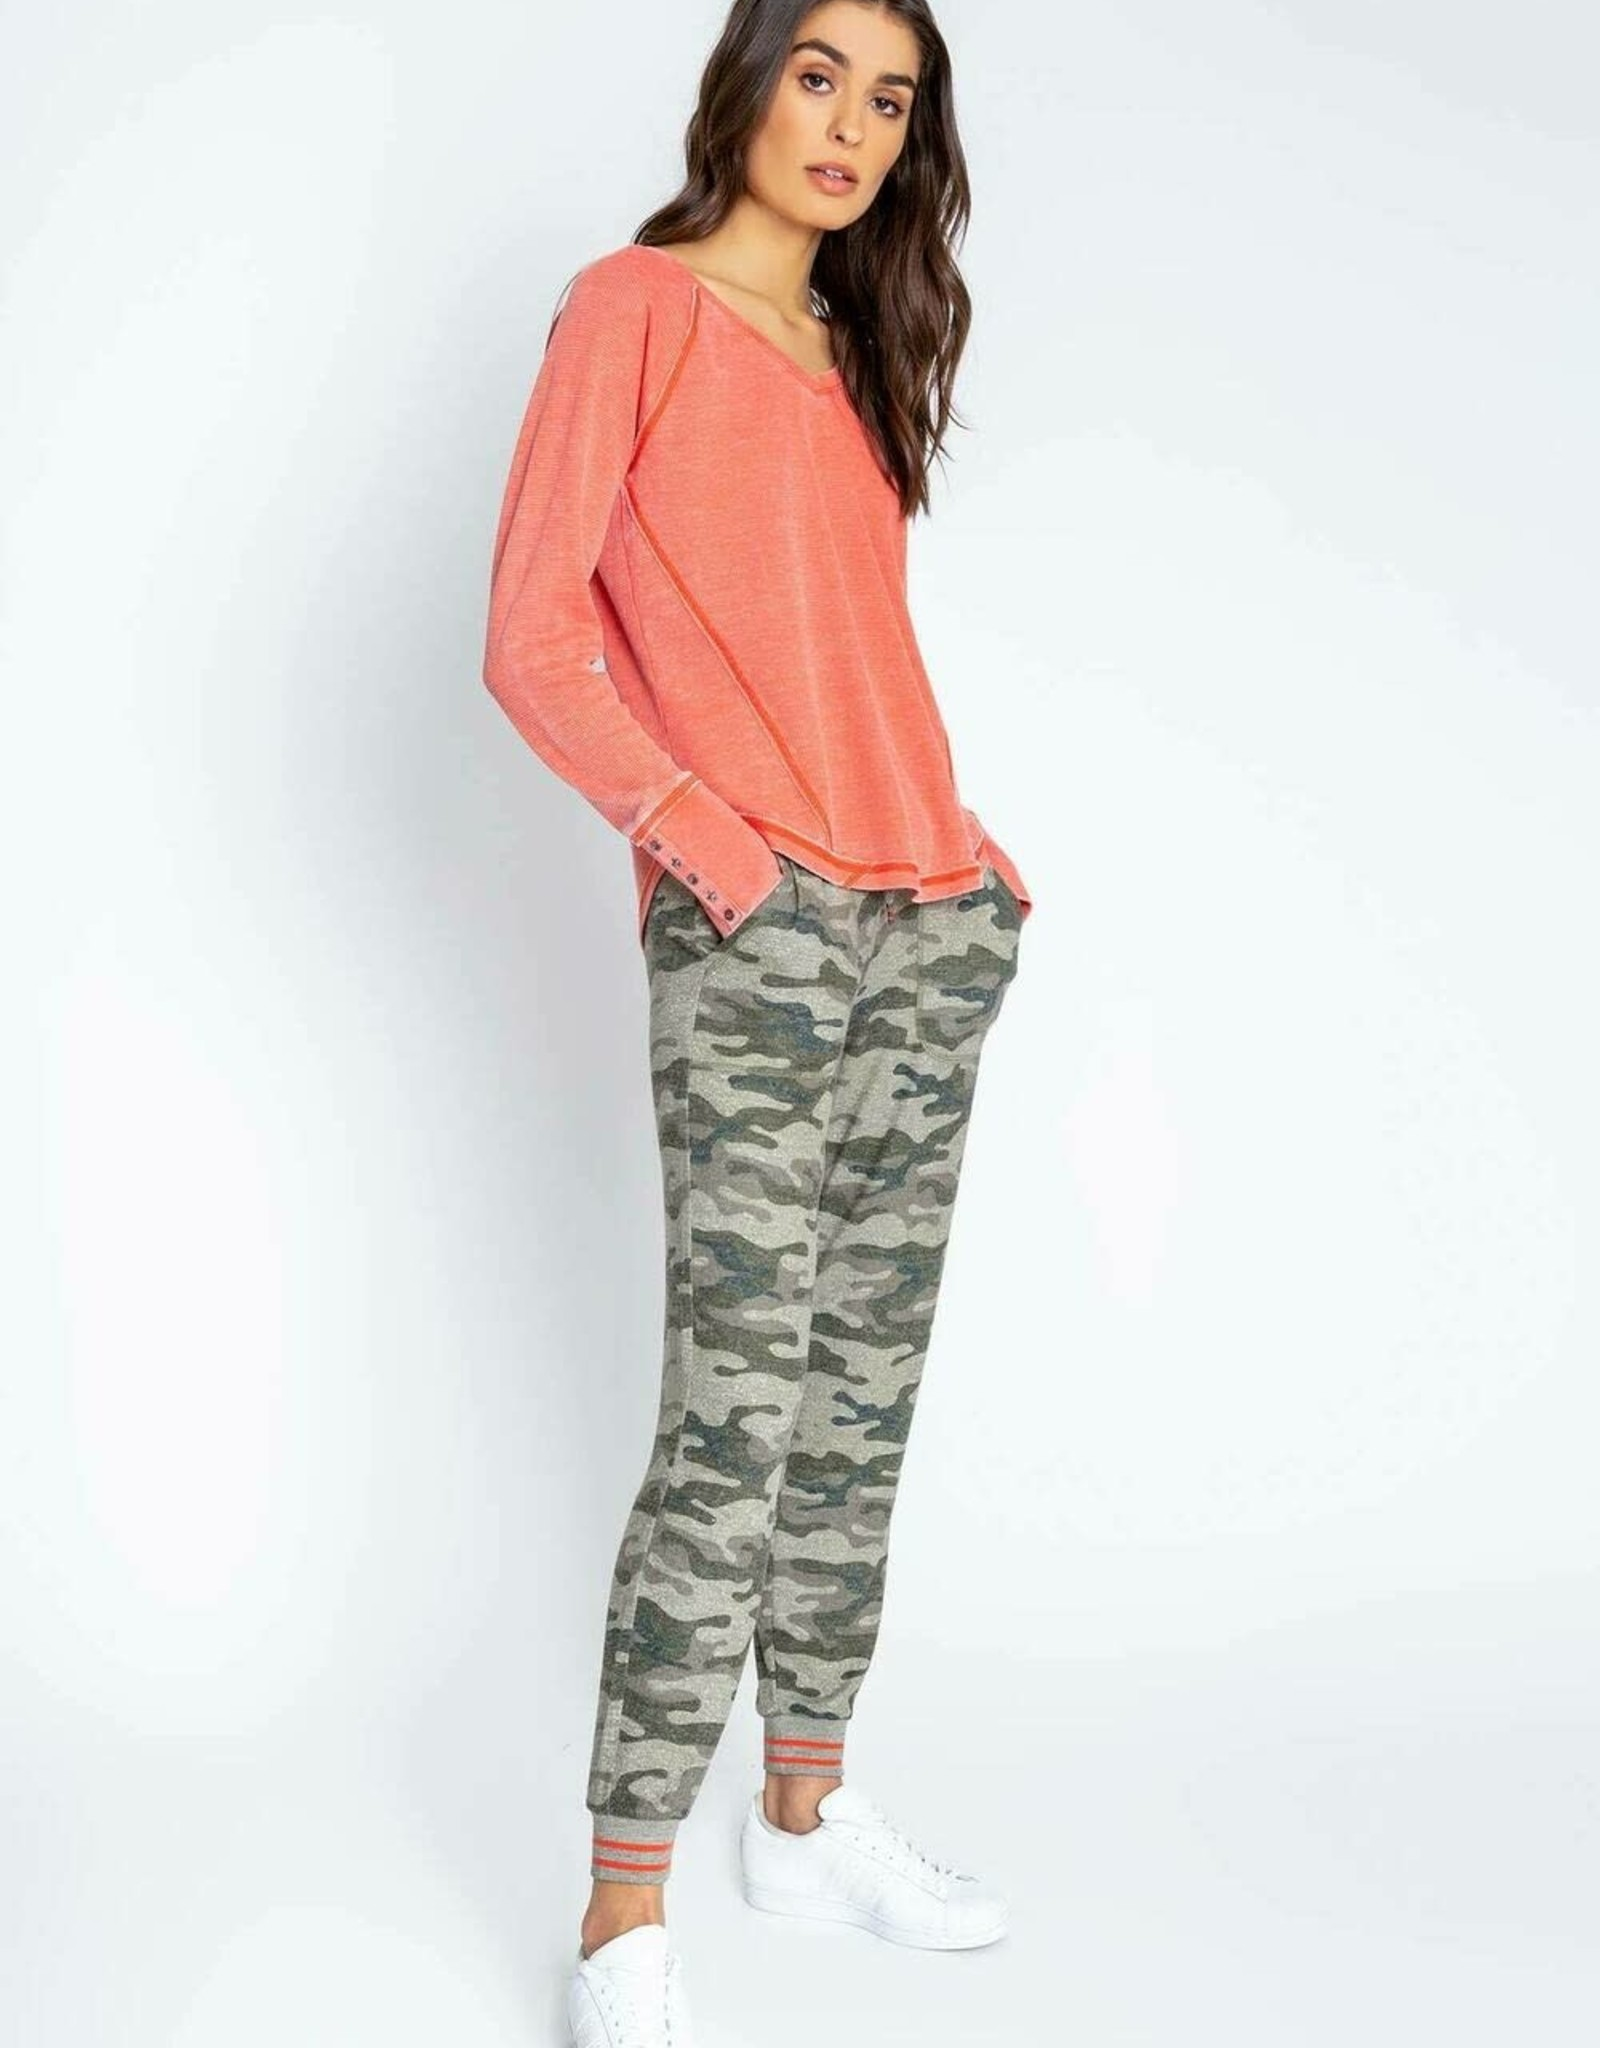 PJ Salvage PJ Salvage In Command Camo Banded Pant